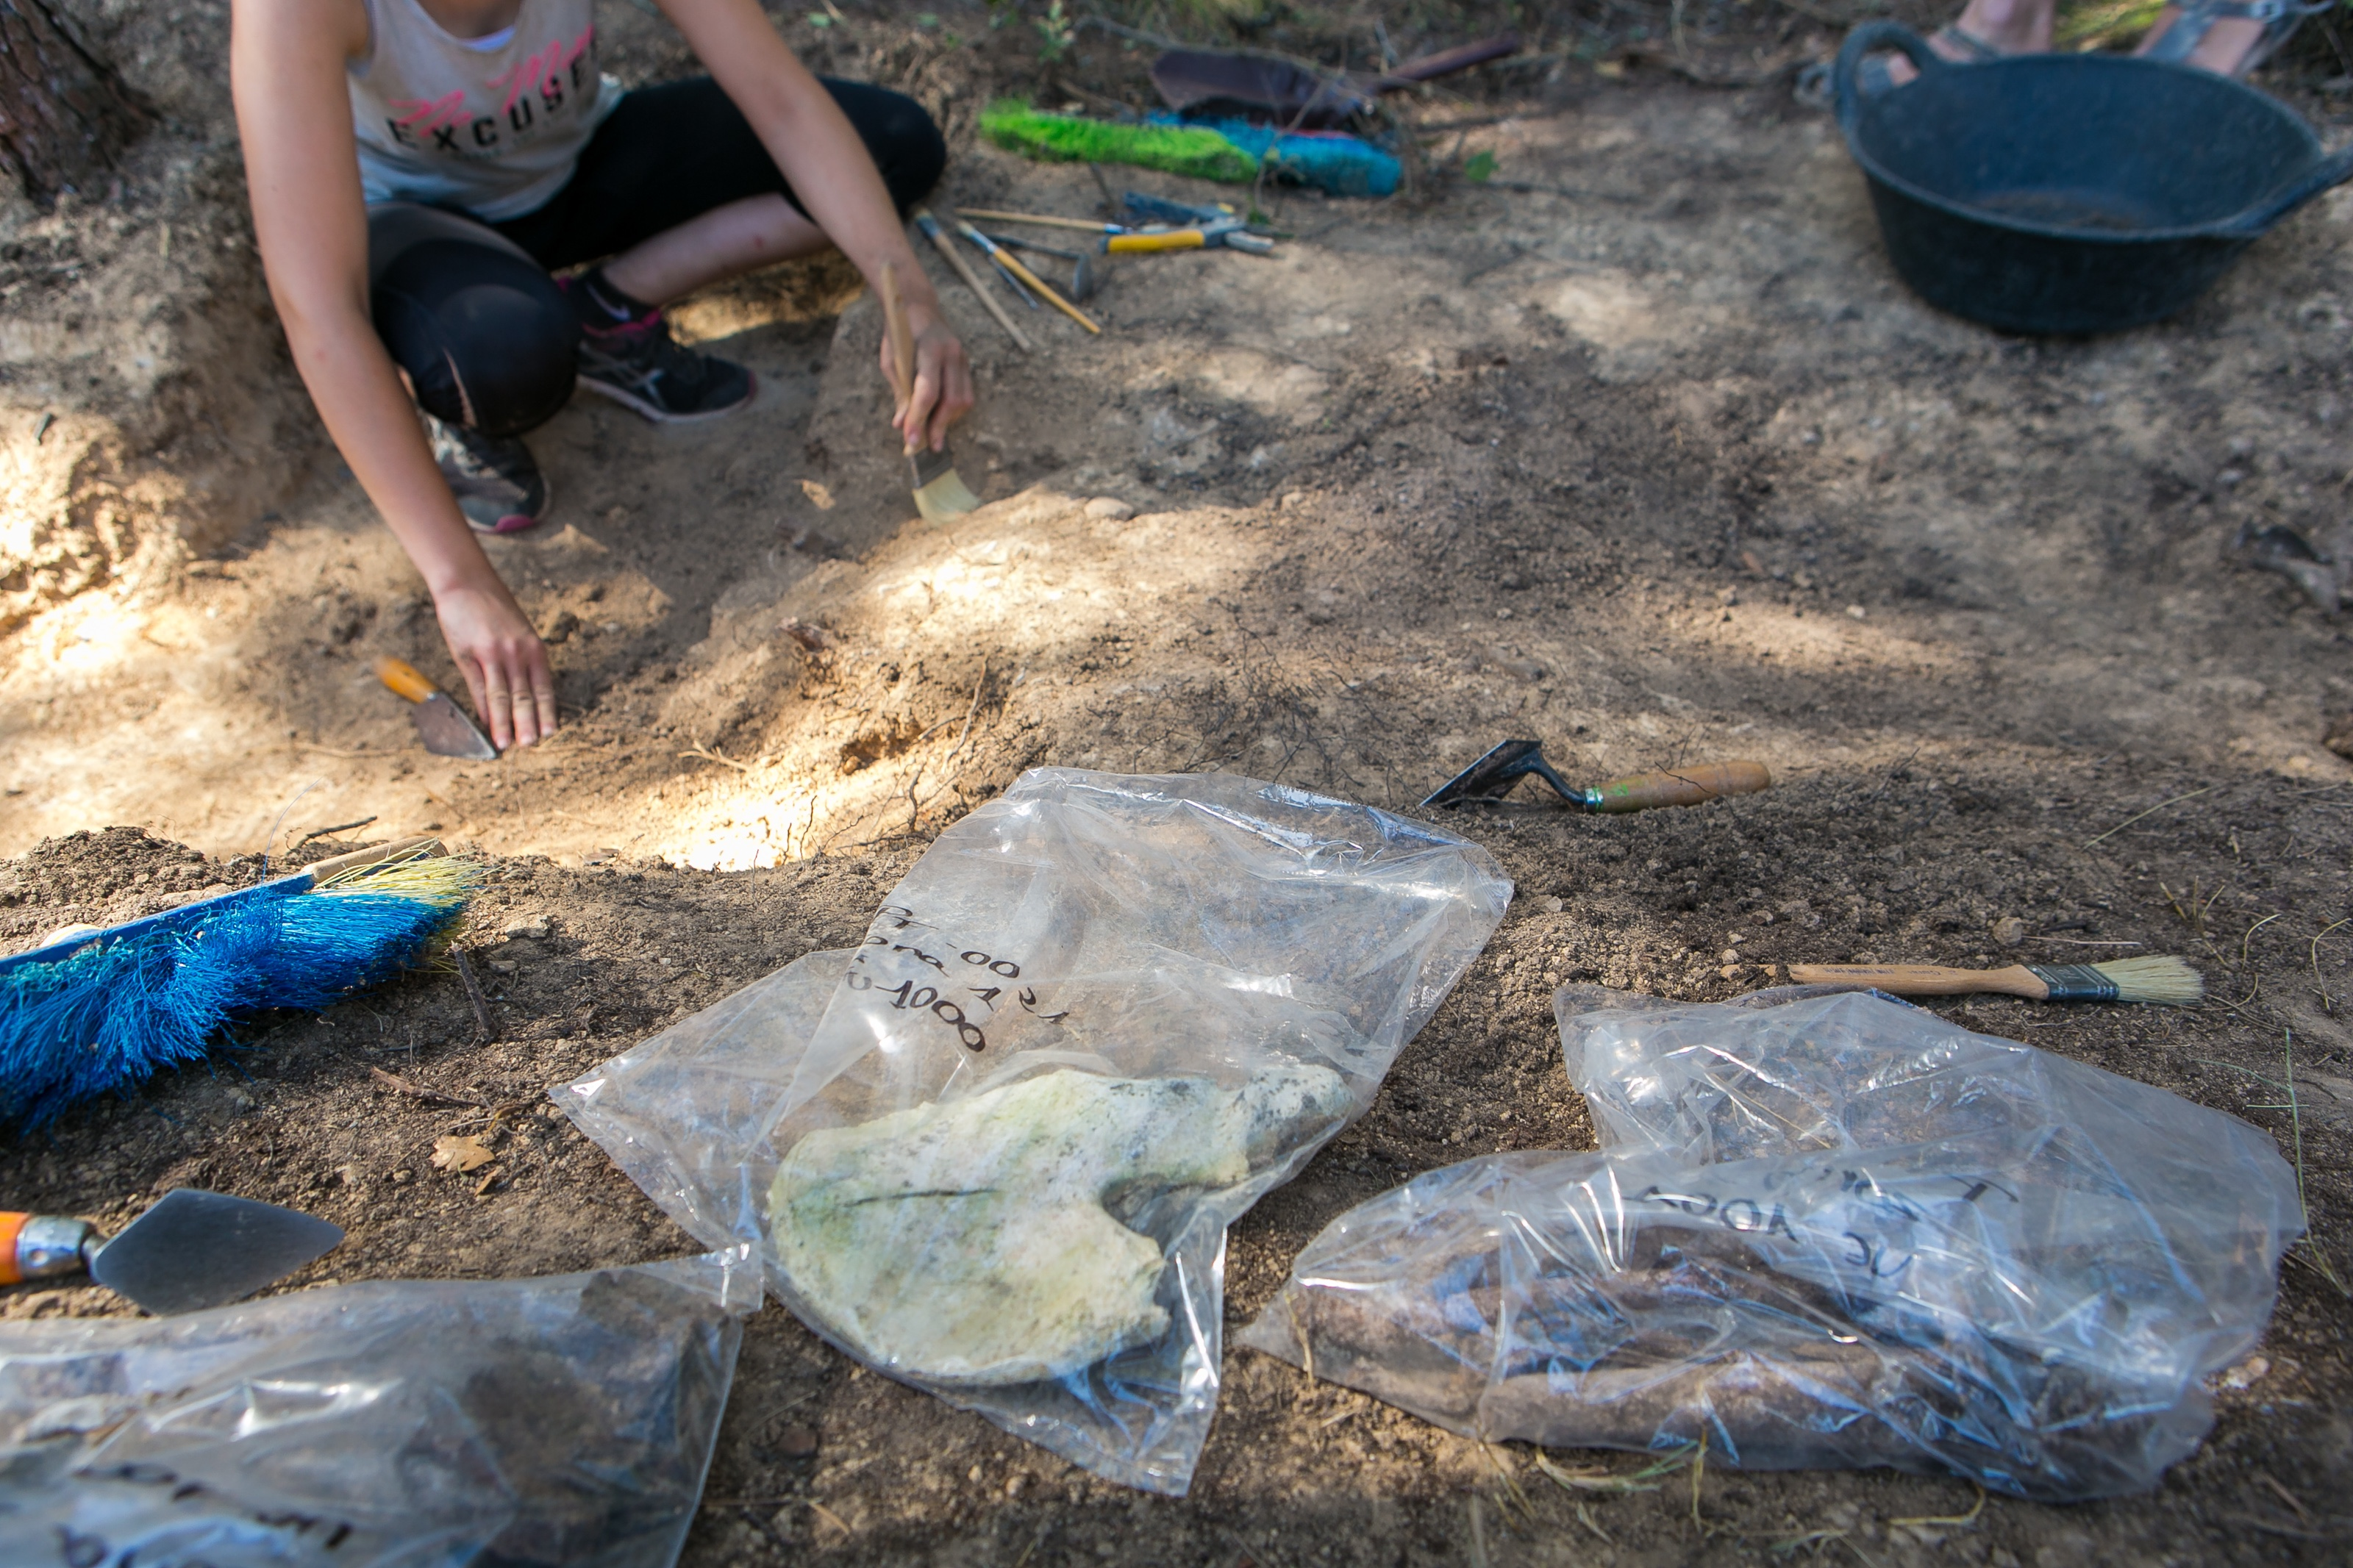 Selection of bone pieces for the extraction of DNA in the cemetery of Castellar del Vallès (Barcelona), 2018. This allowed identification of the remains of an Italian anti-Franco guerrilla who was murdered by the Civil Guard in 1949.